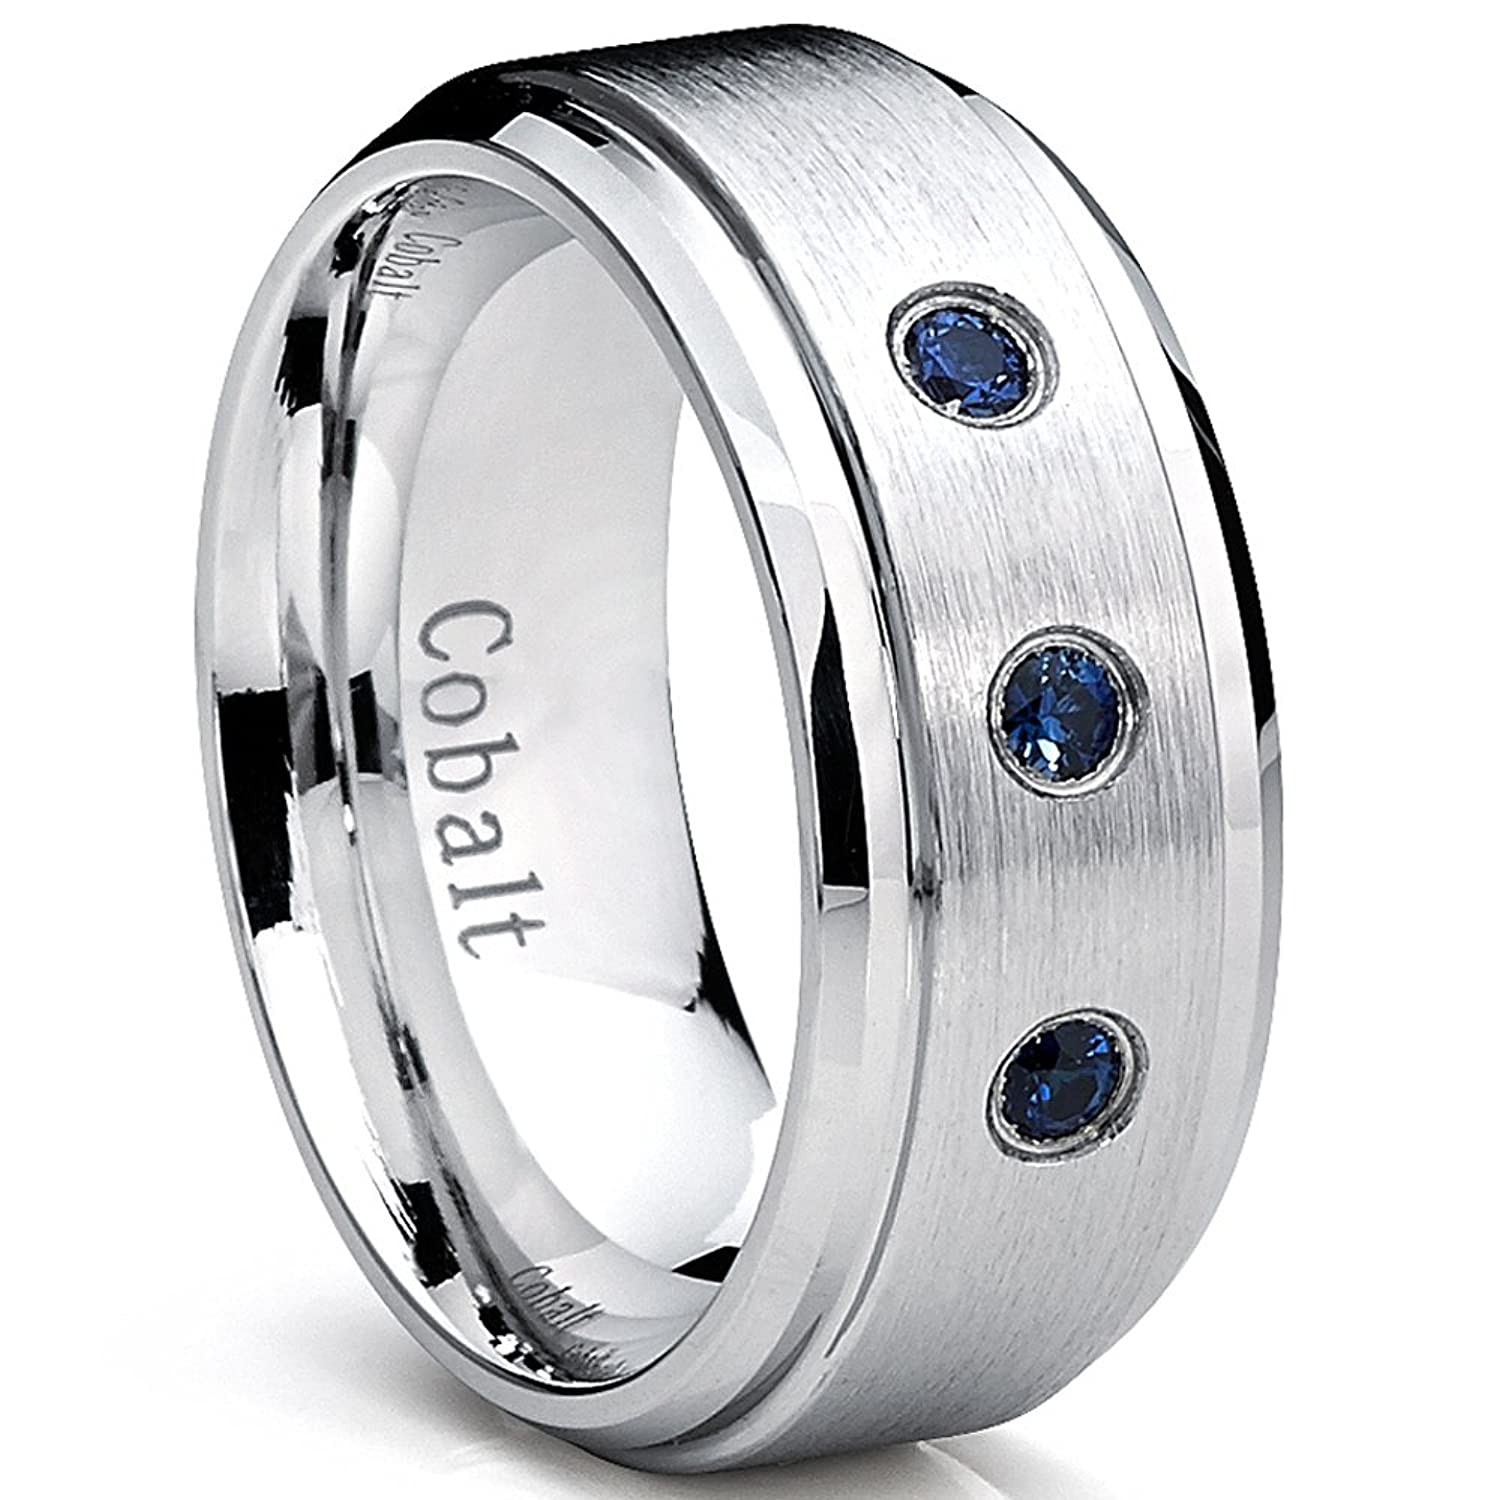 9MM Cobalt Mens Ring Wedding Band With Blue Sapphire Real Stones